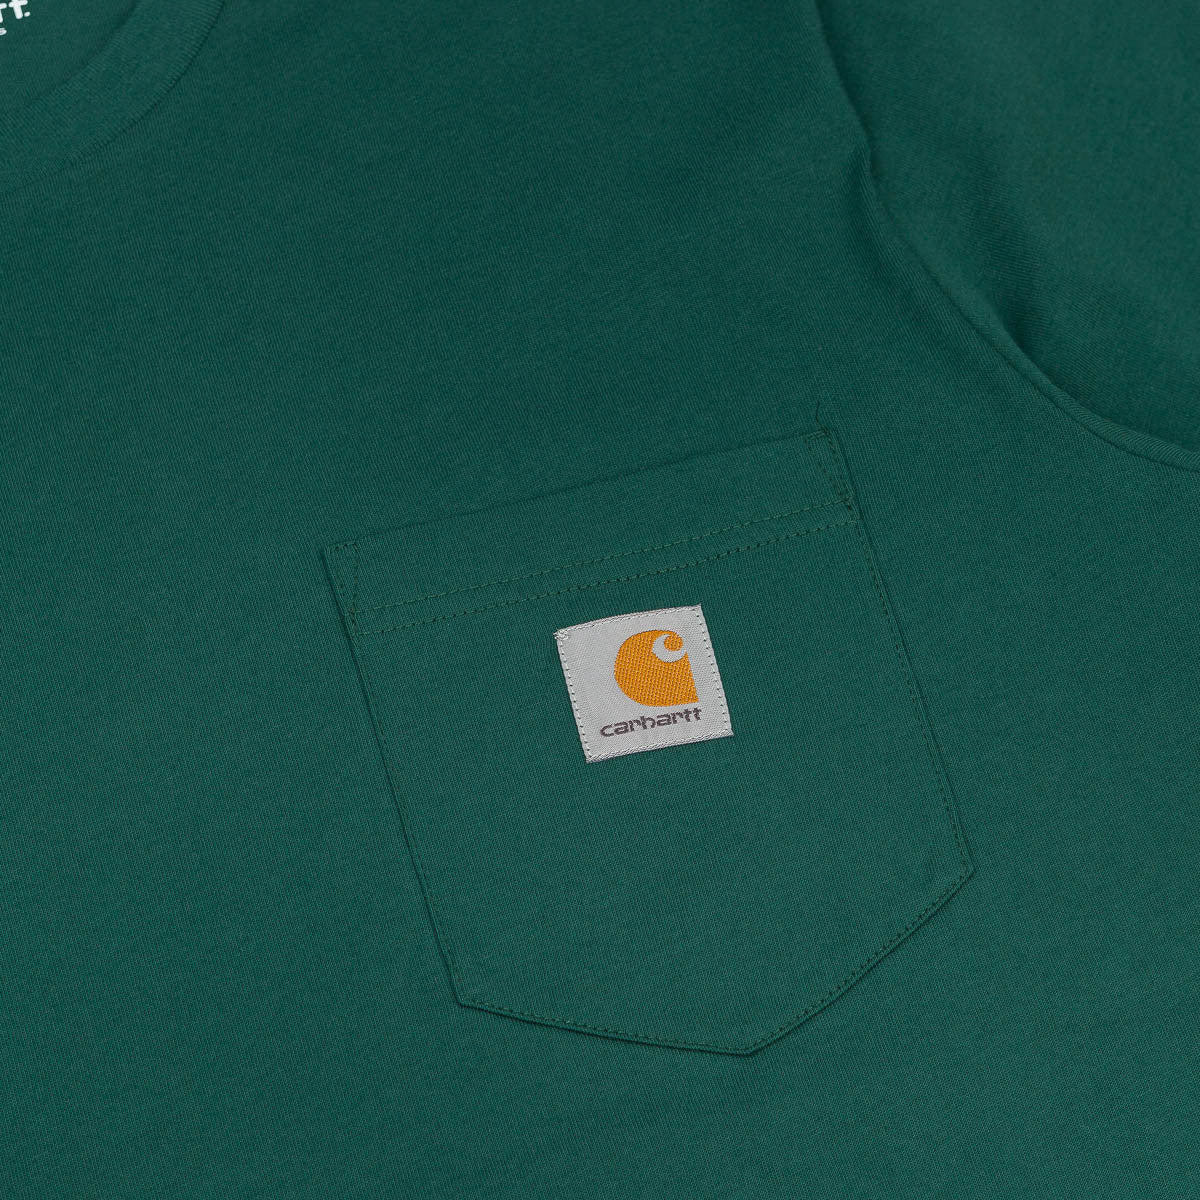 Carhartt Pocket T-Shirt - Bottle Green